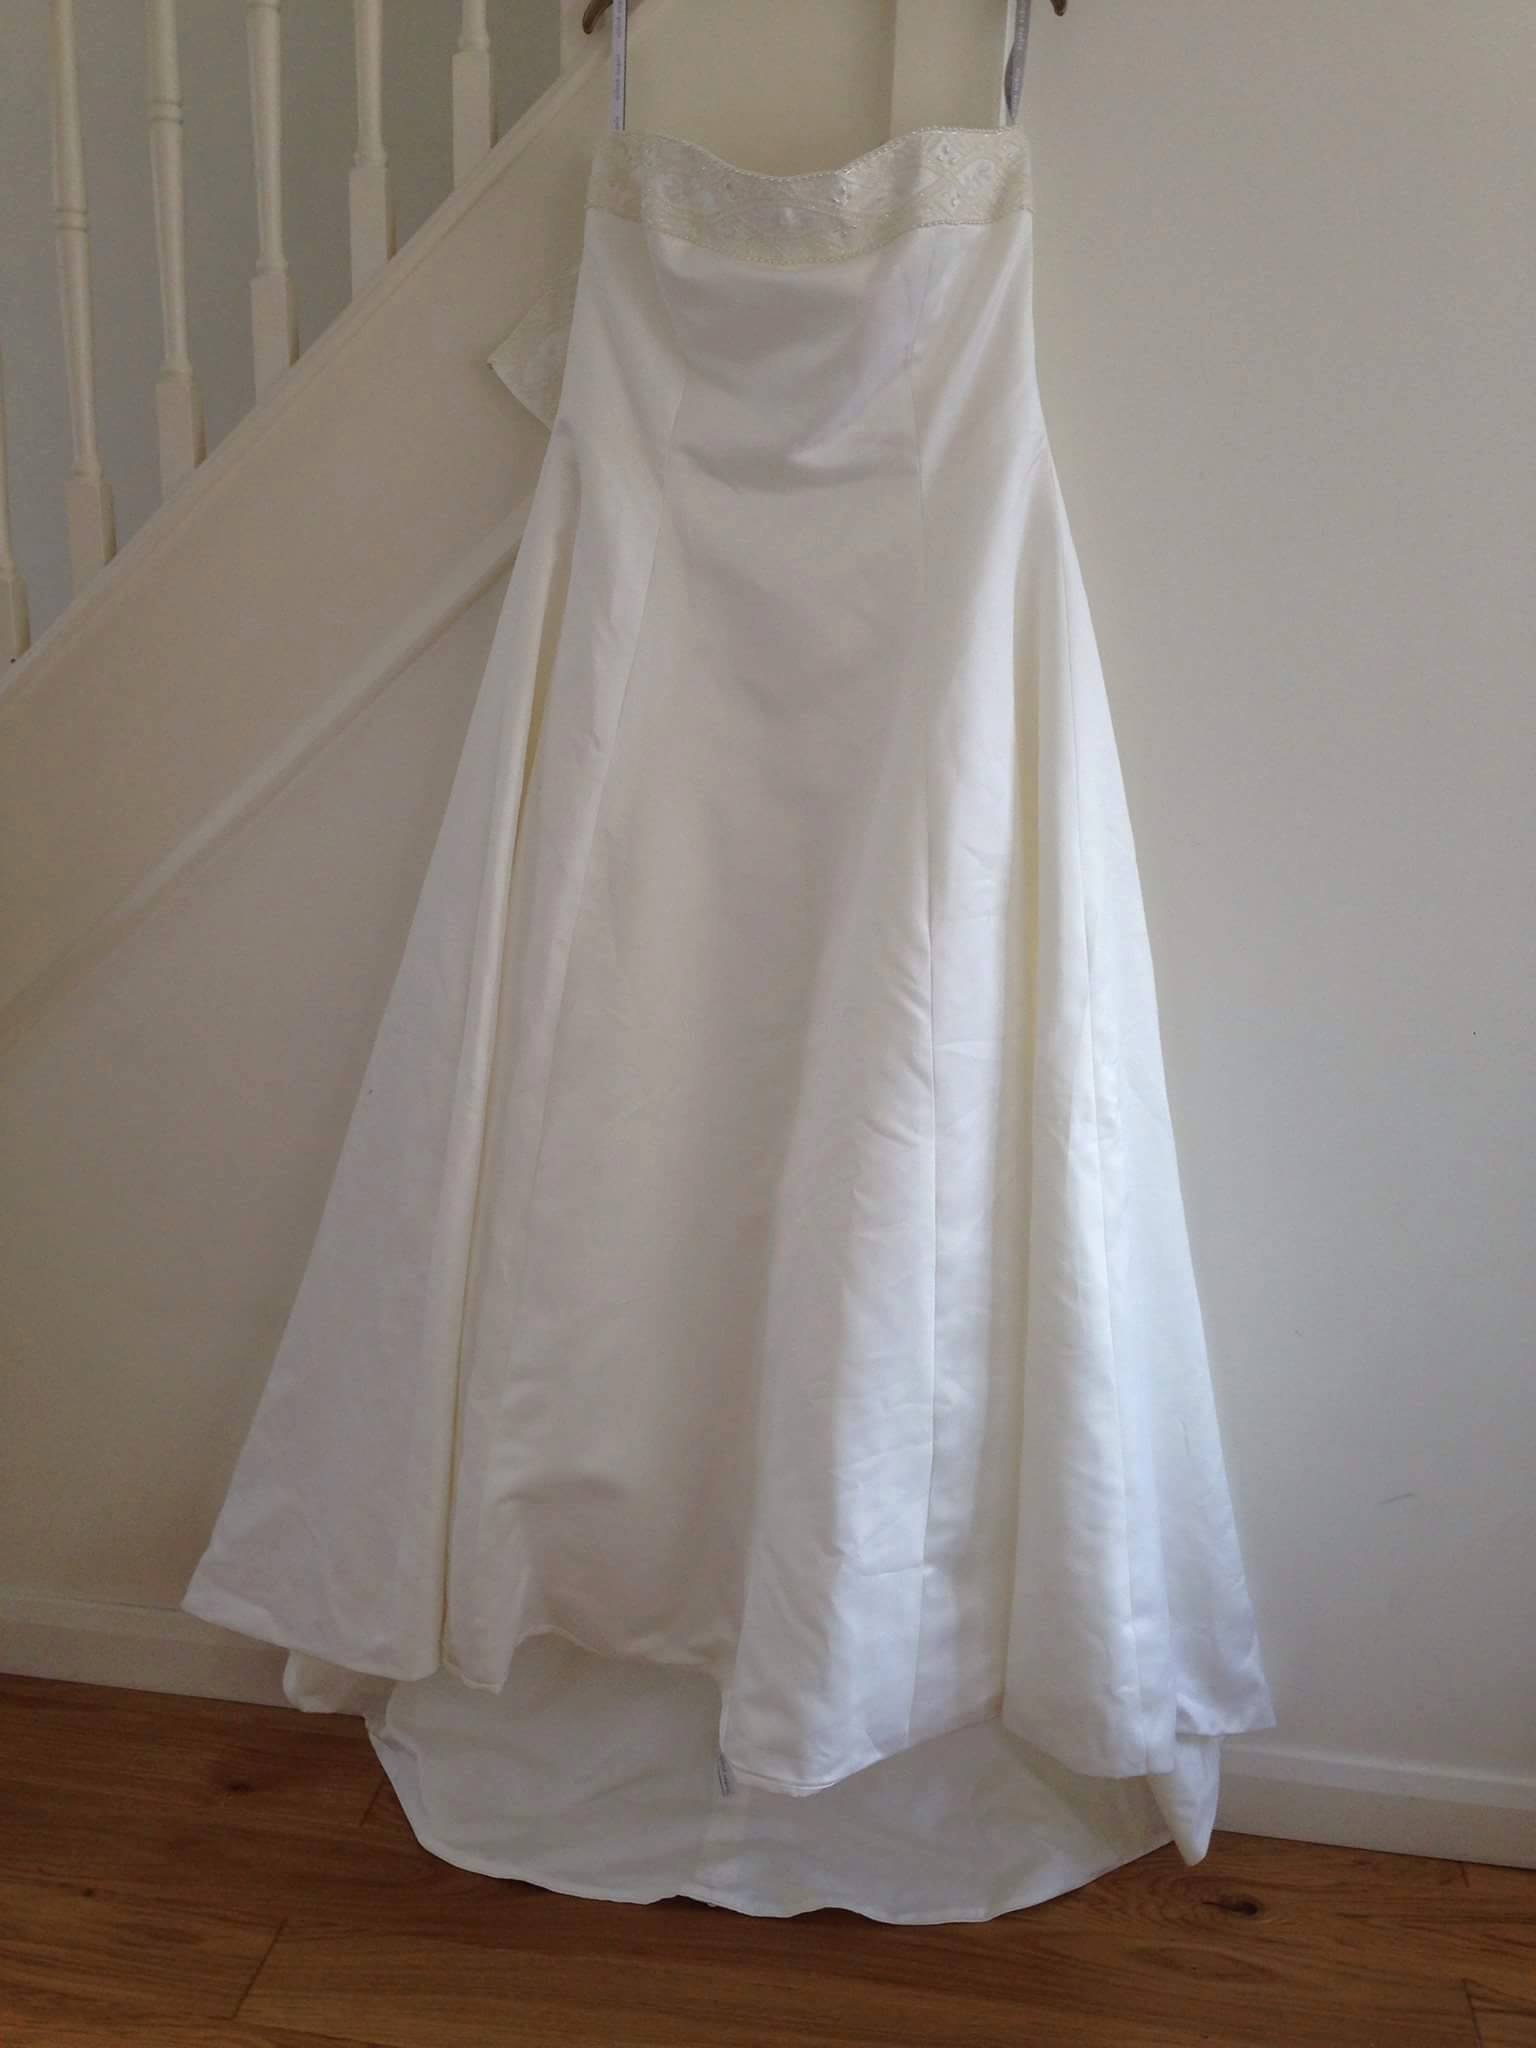 Donated wedding dresses / Bridesmaid dresses / Christening gowns ...